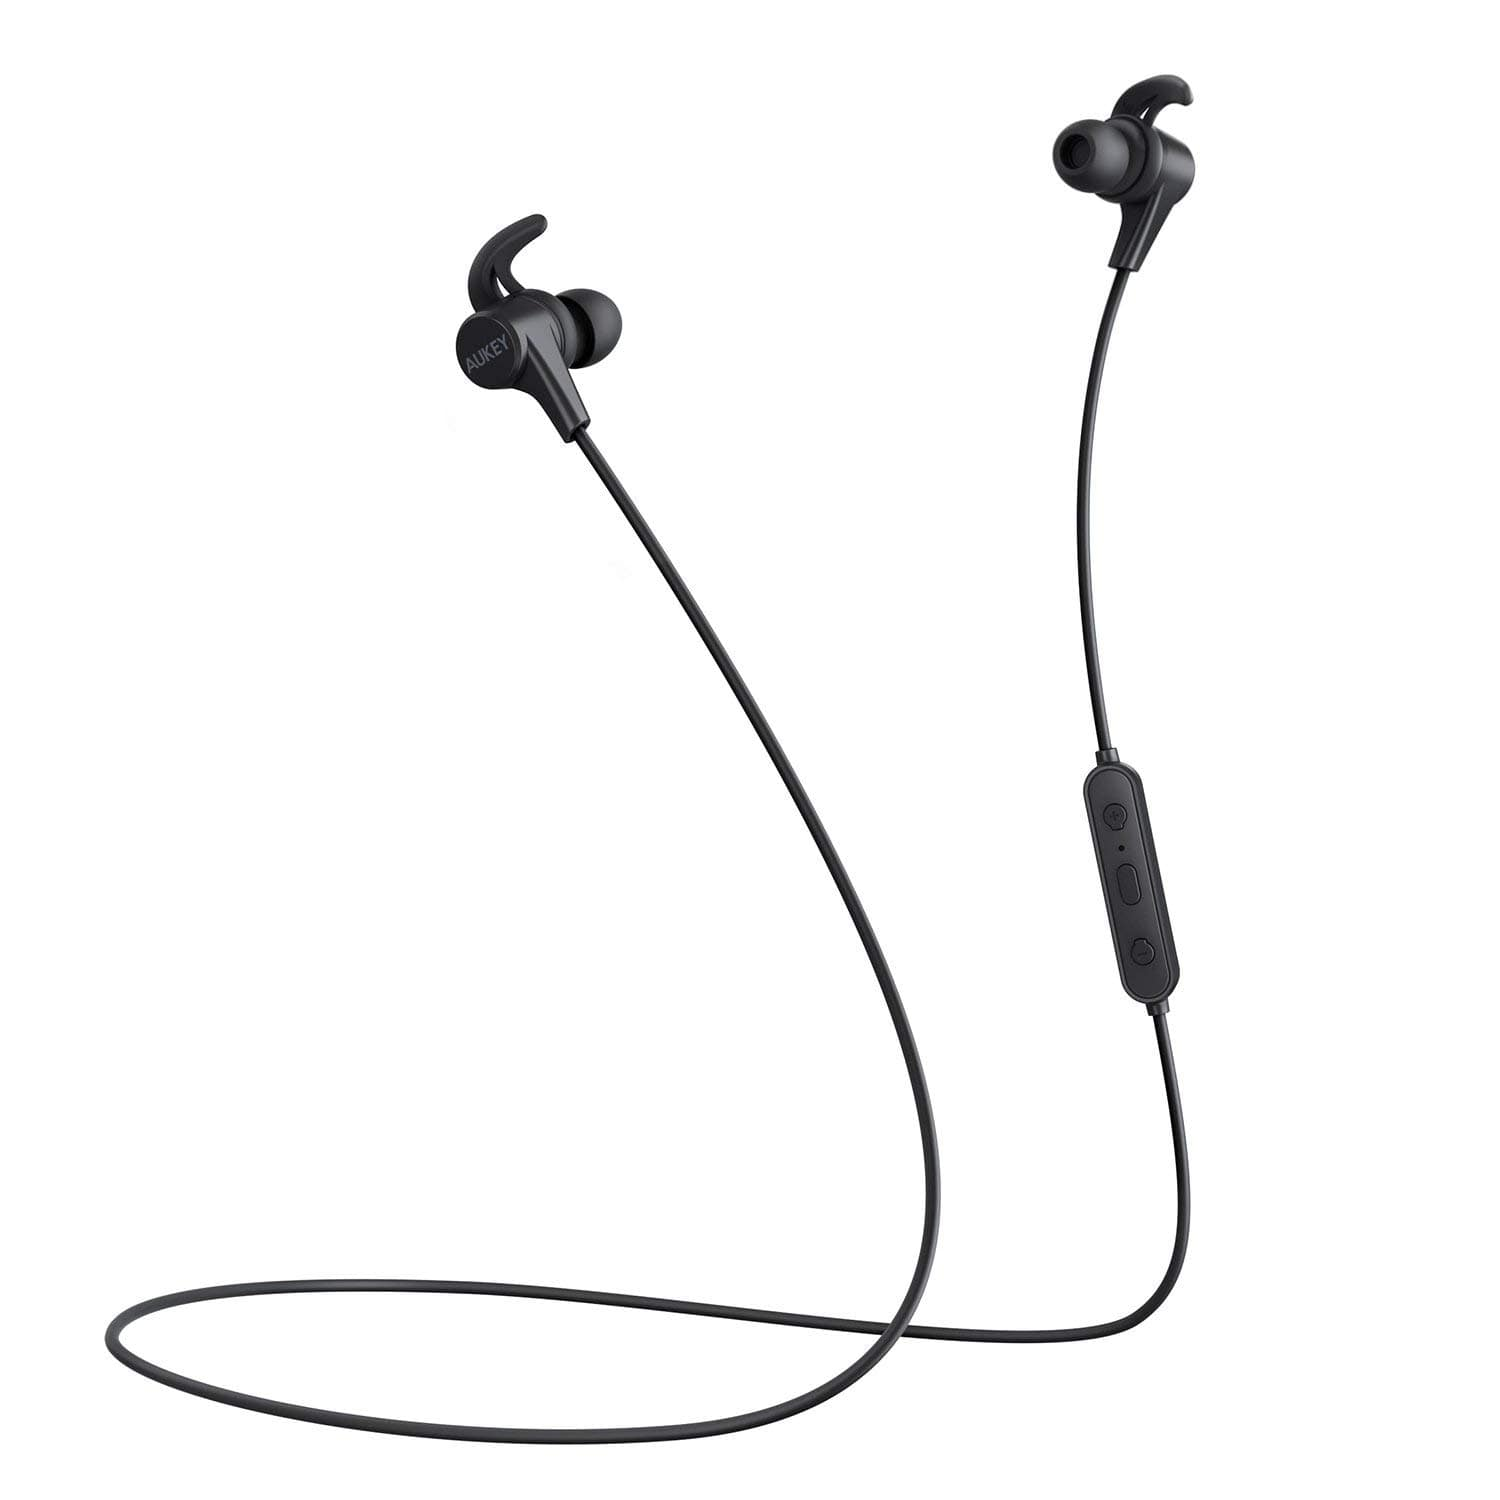 Aukey Latitude Wireless Bluetooth 4.1 Headphones w/ 3 EQ Sound Modes & aptX  $17.69 + Free Shipping